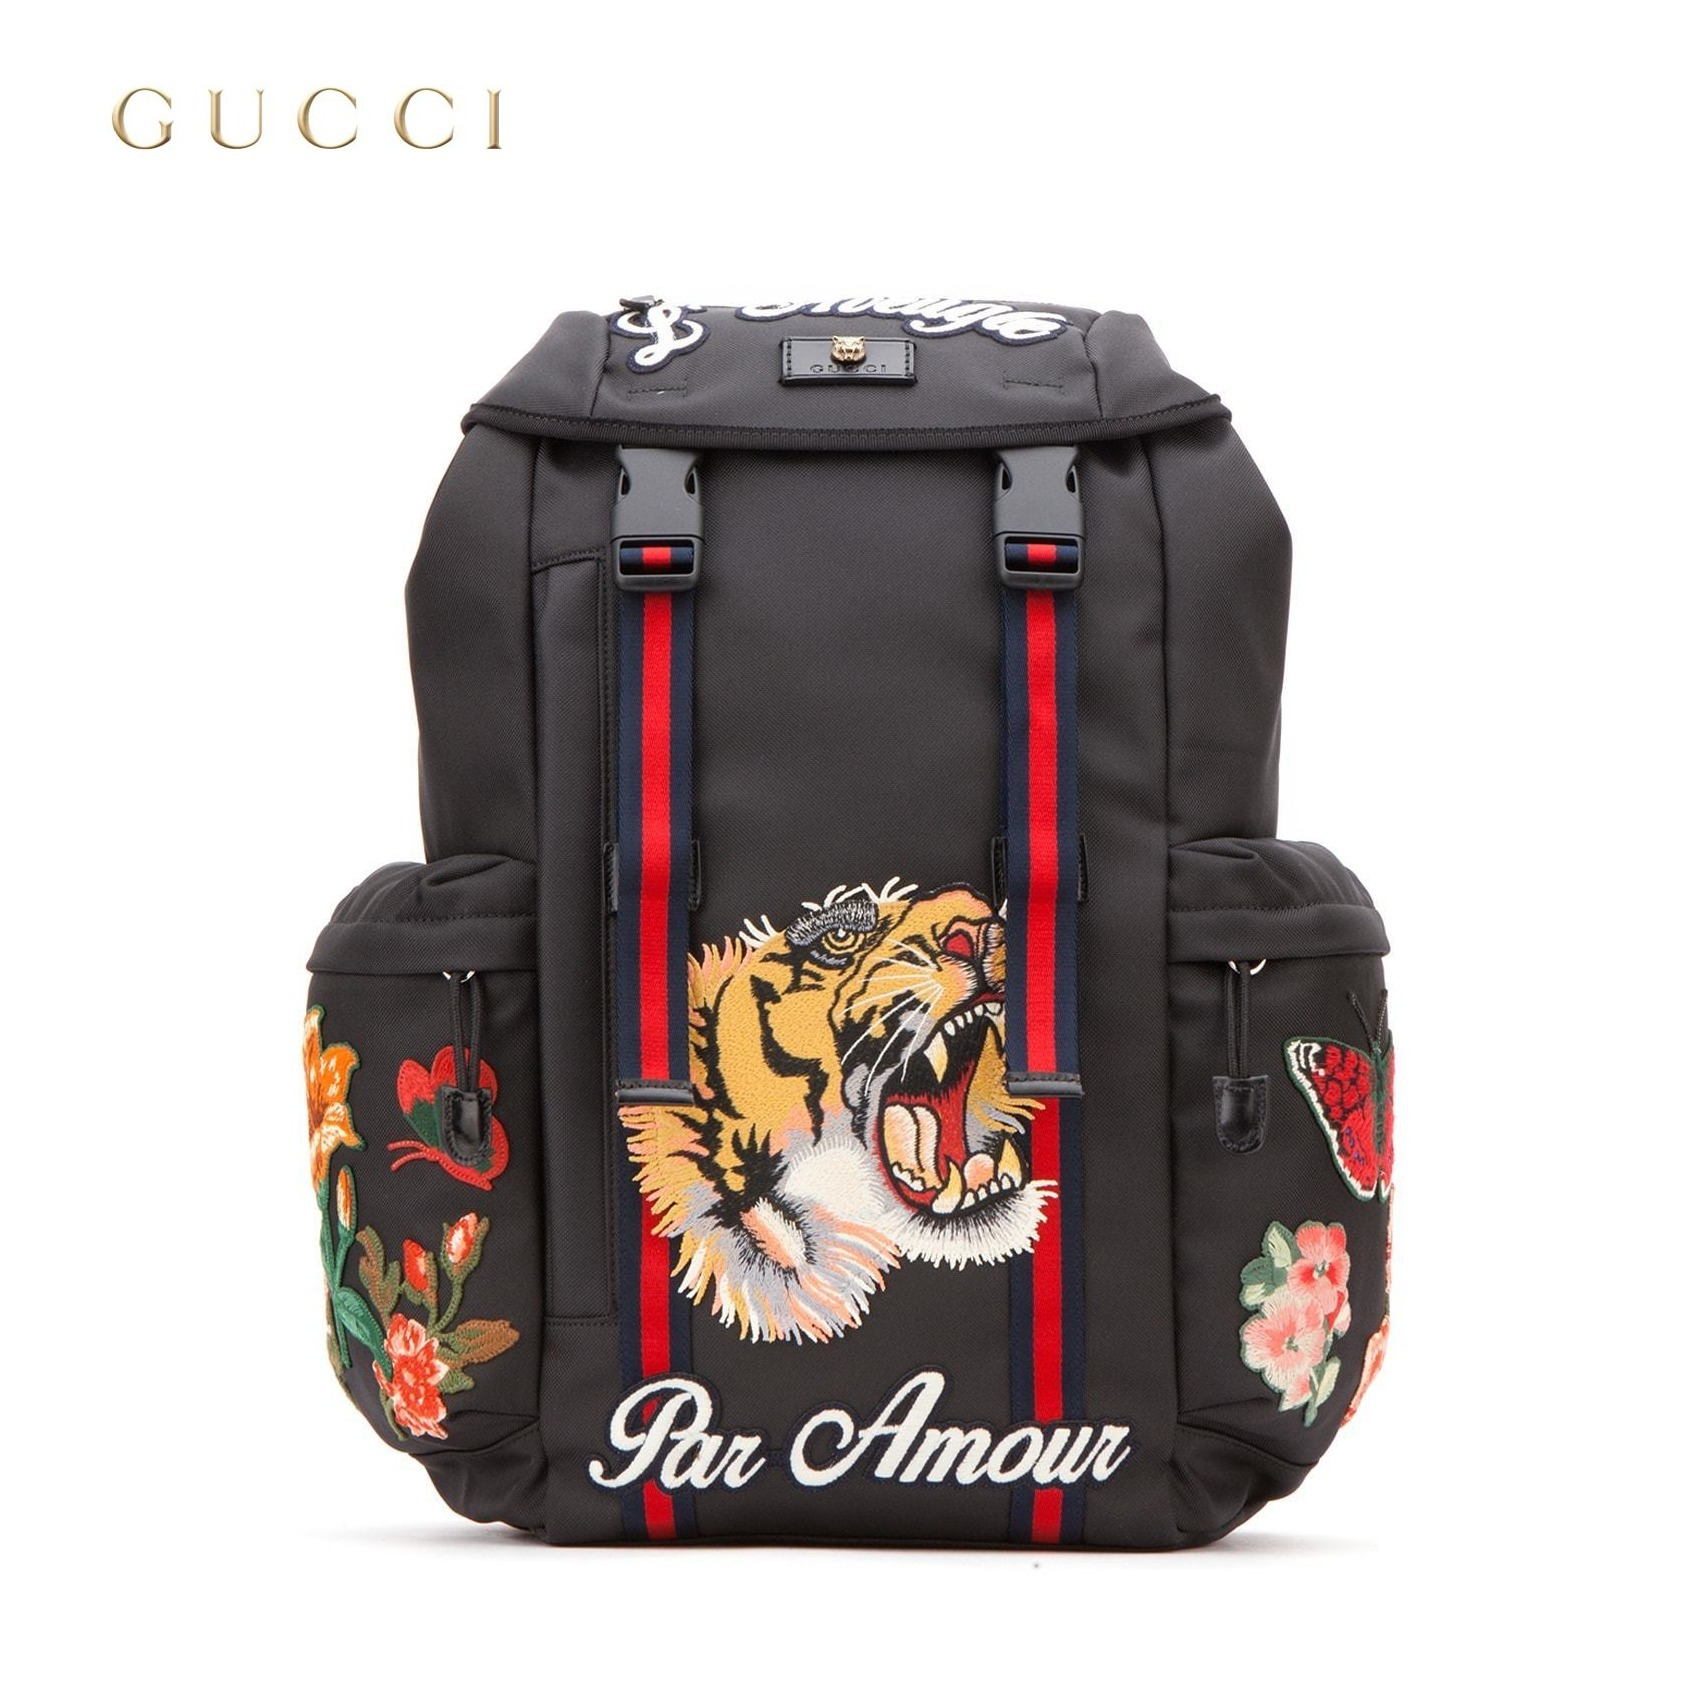 16 AW GUCCI Tiger applique back pack BUYMA 0279a46bf35